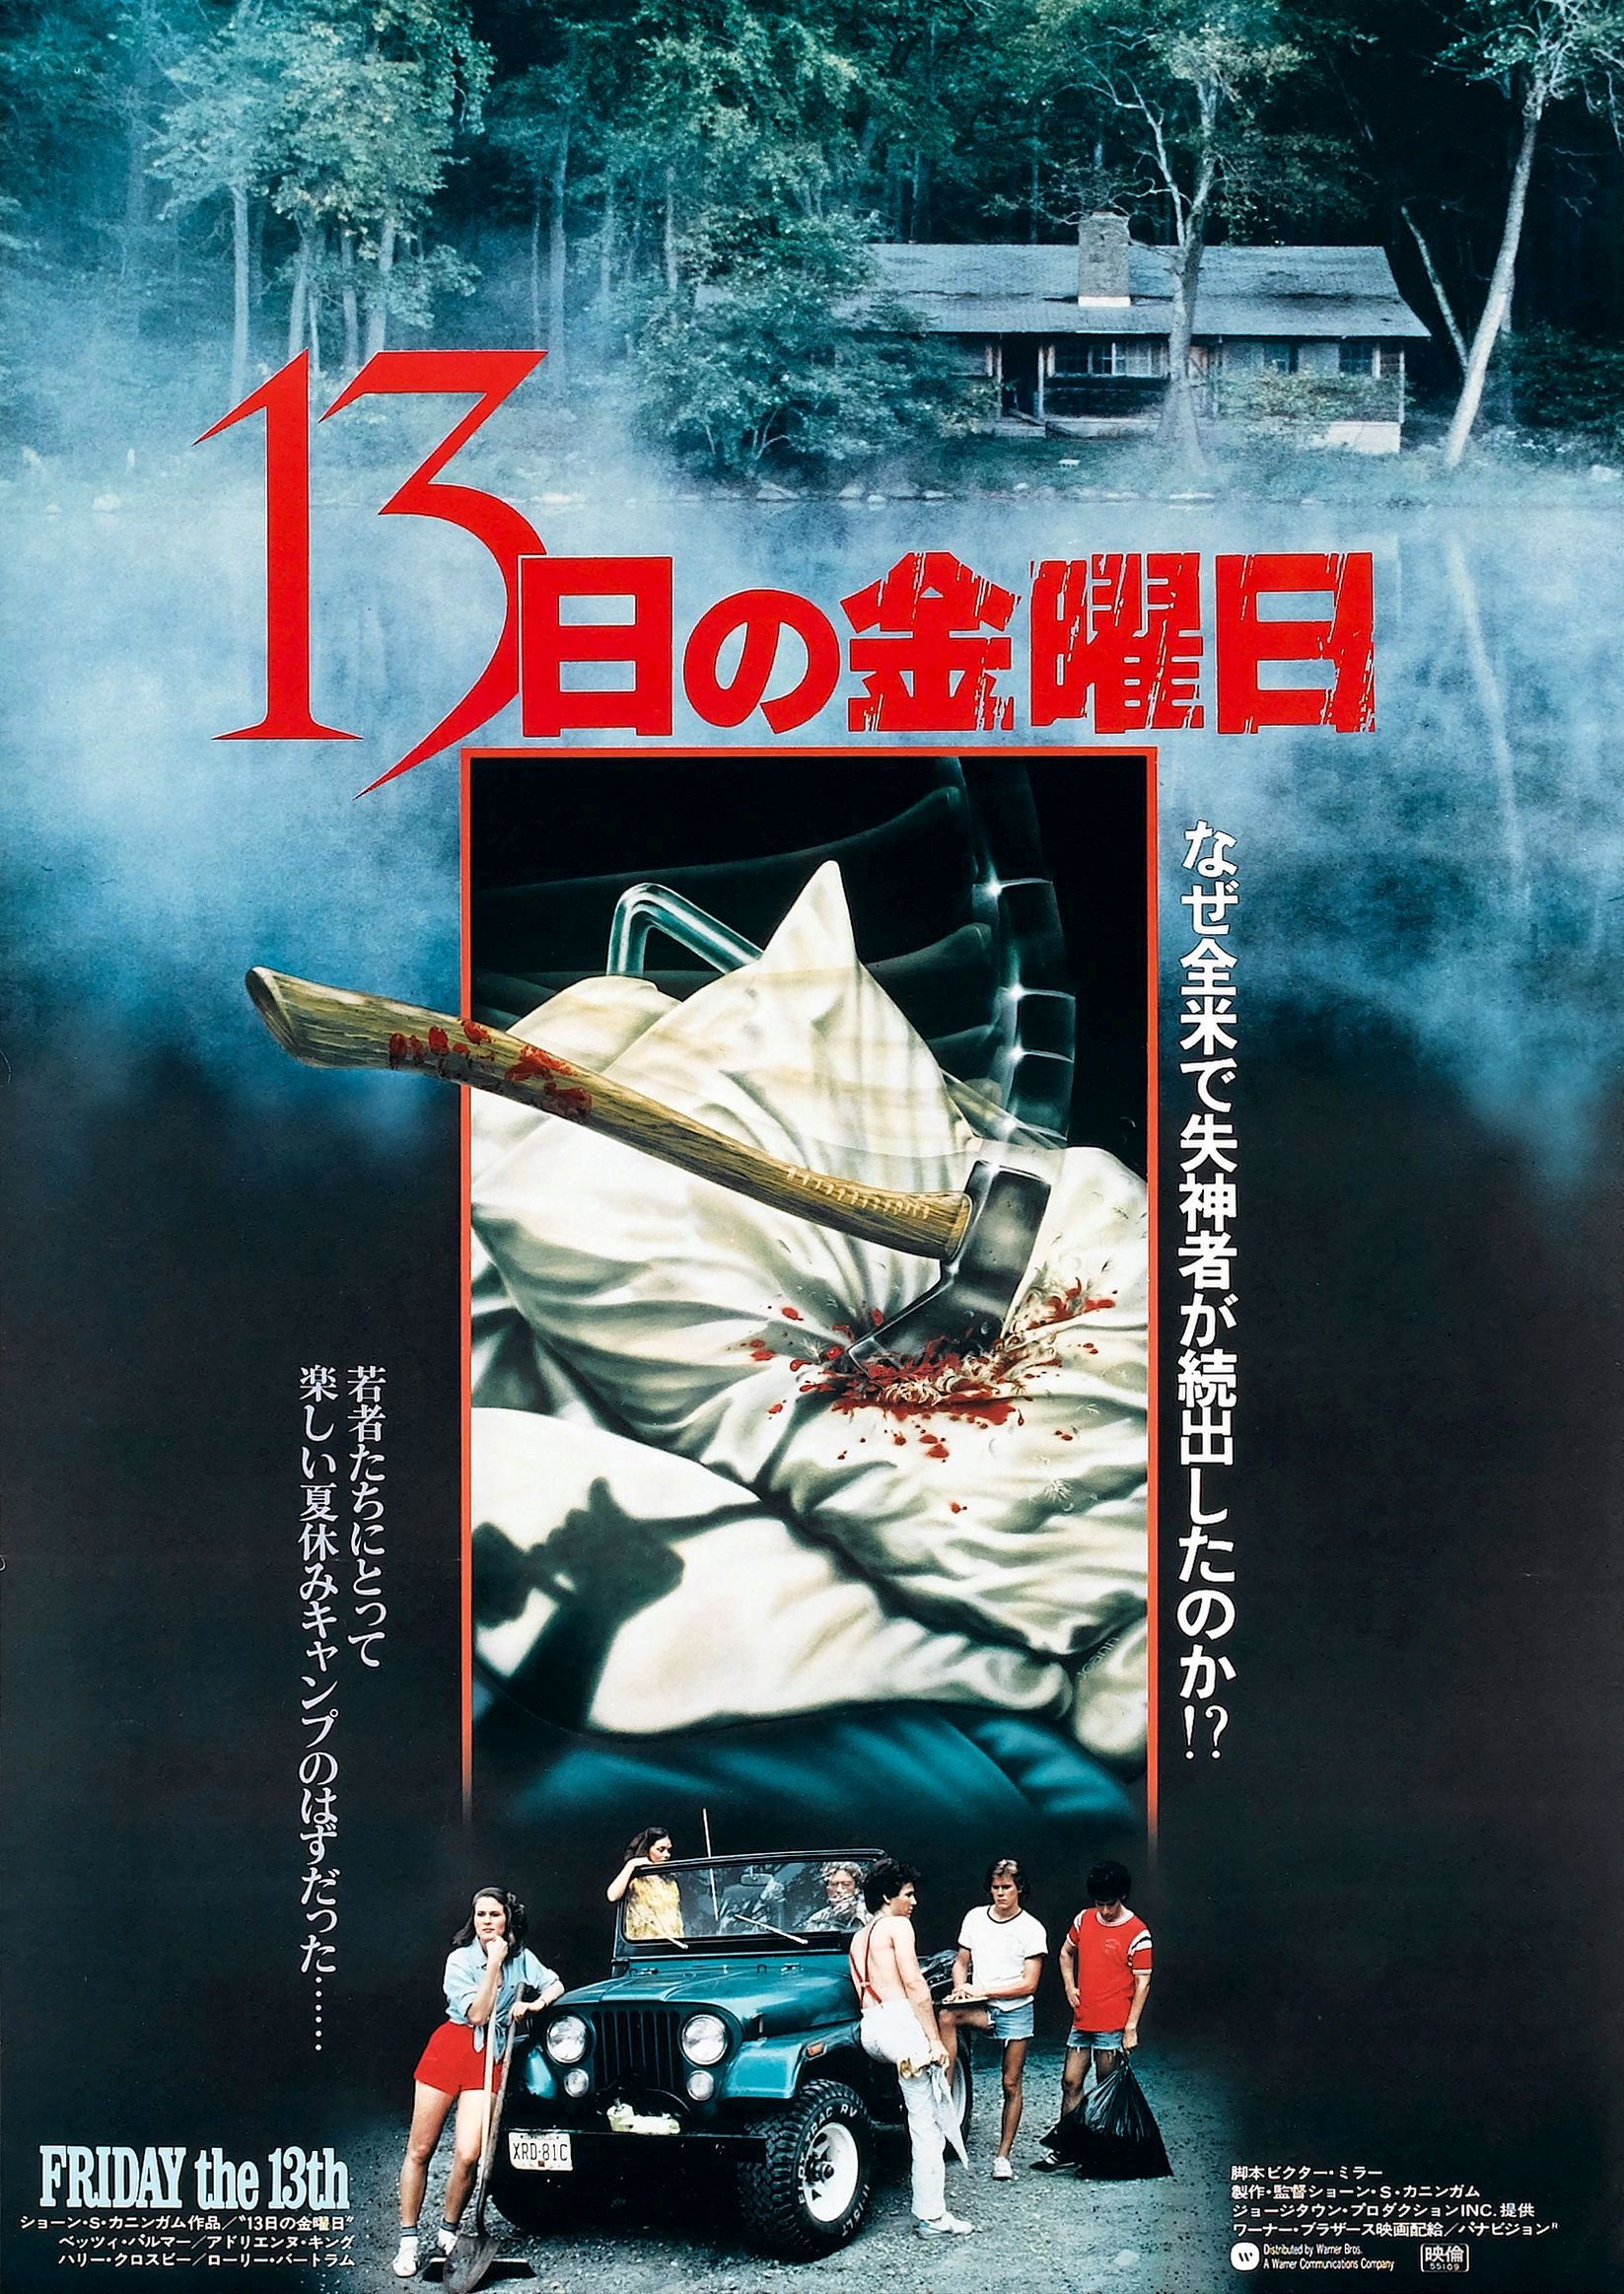 Friday the 13th Japanese poster